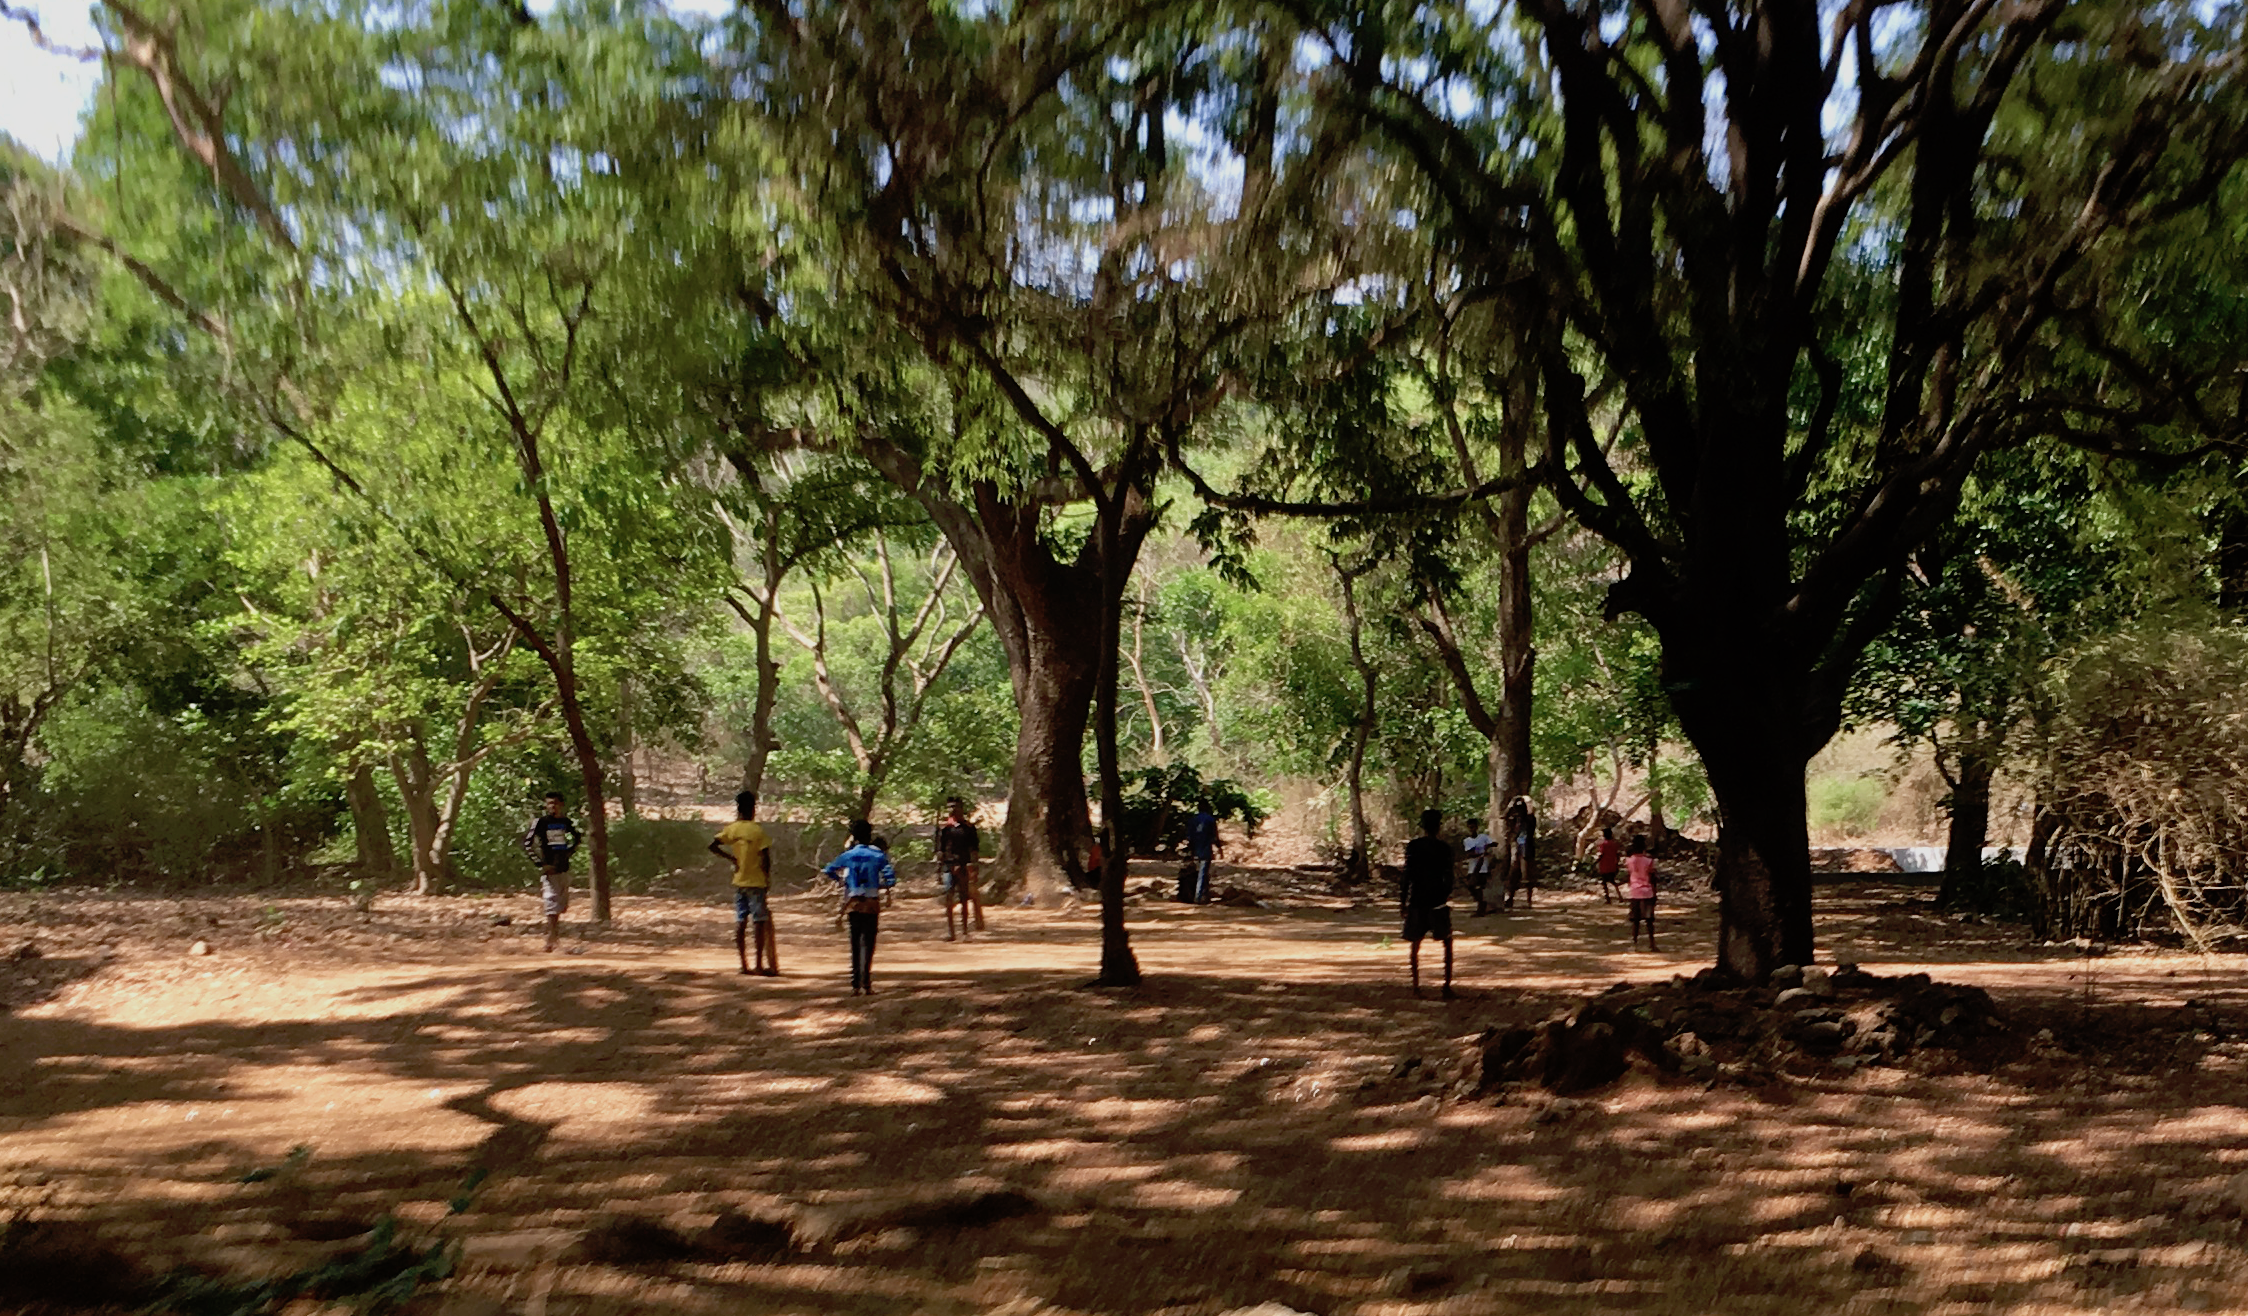 Playing cricket in the Sanjay Gandhi National Park